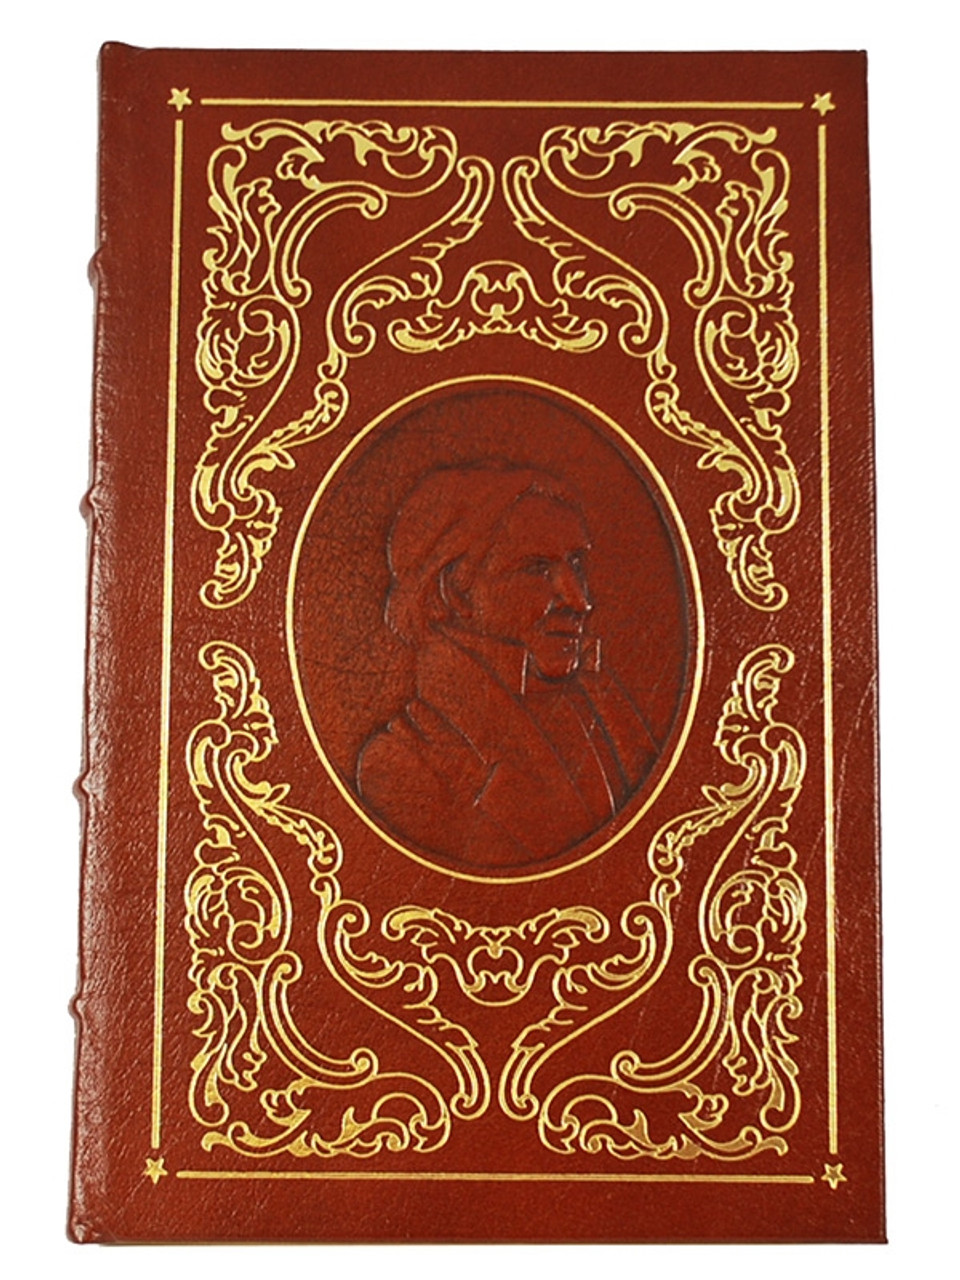 """Easton Press, """"Heroes of the Wild West"""" Leather Bound Limited Edition, 5 Vol. Complete Matched Set"""